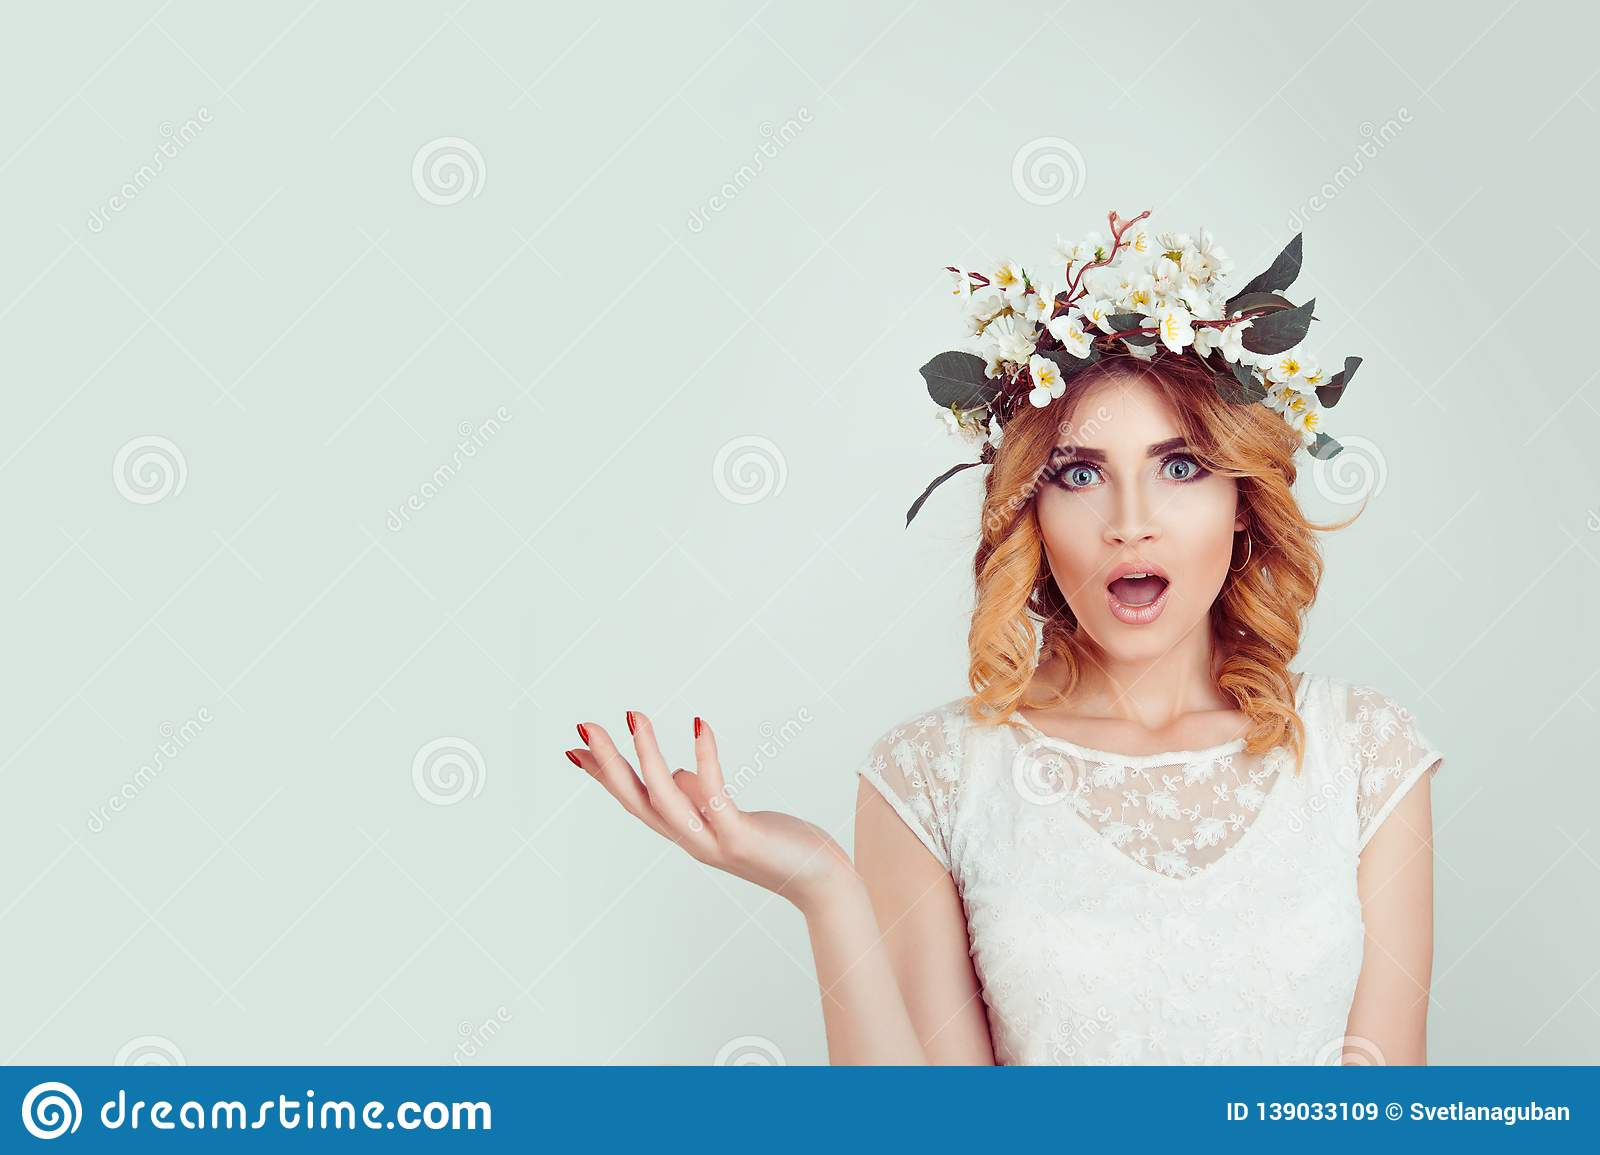 Surprised stunned woman in floral headband portrait